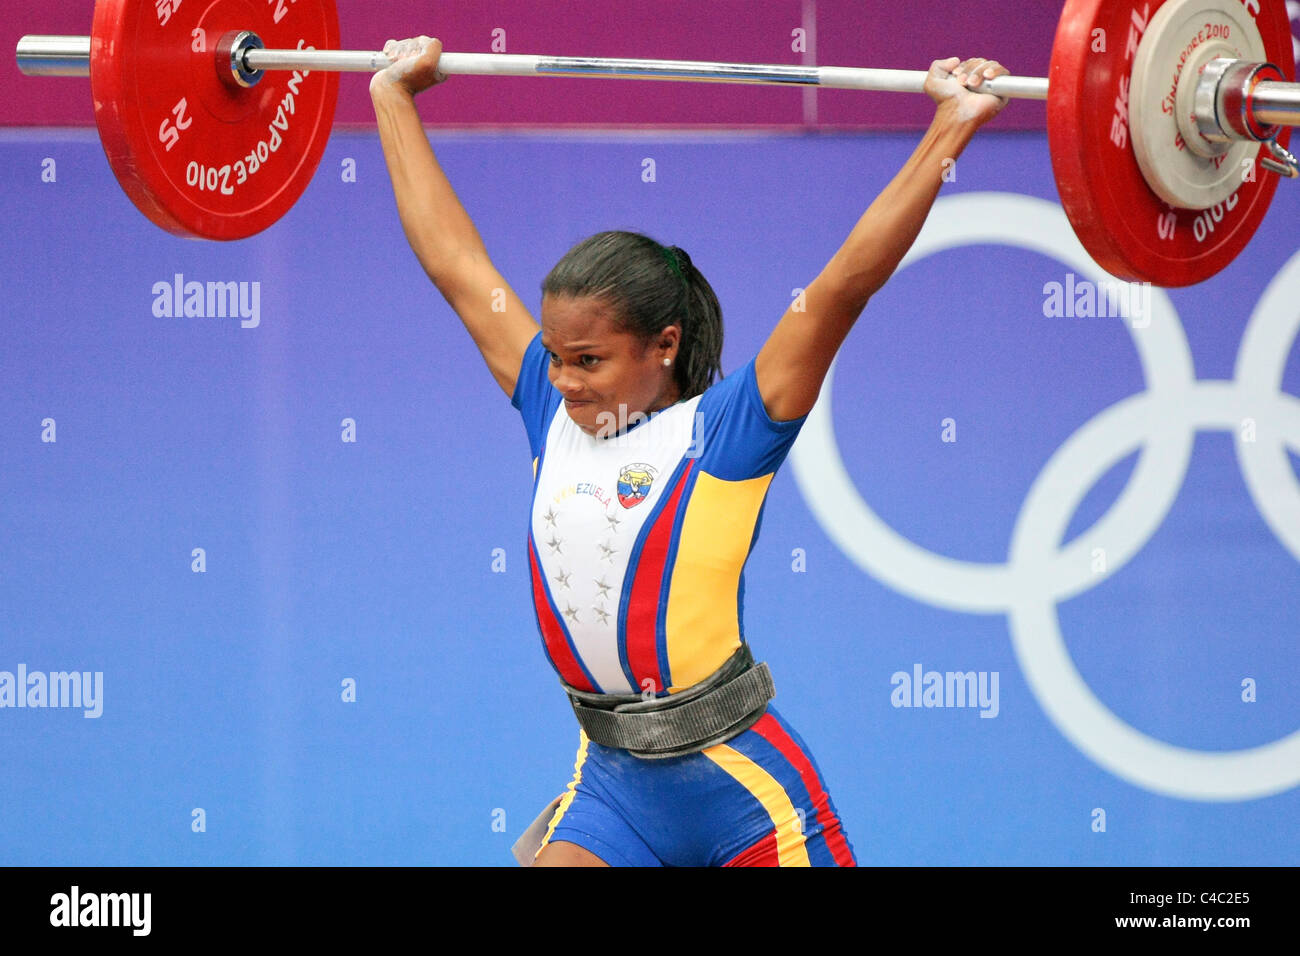 Venezuela's Genesis Rodriguez in action during her clean and jerk routine. - Stock Image